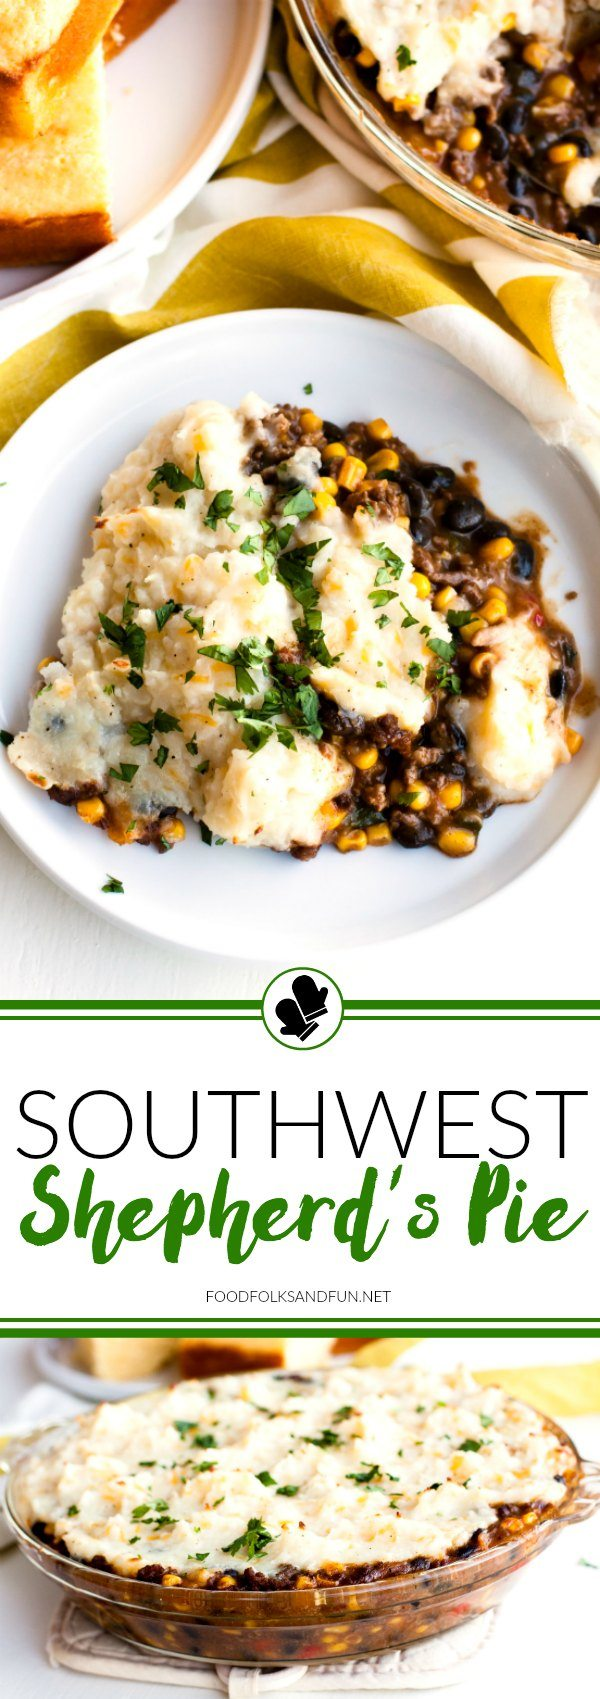 Southwest Shepherd's Pie is an easy, weeknight dinner that's great for when the weather turns cool and crisp. I added a southwest twist to this classic dish that your family will love! via @foodfolksandfun